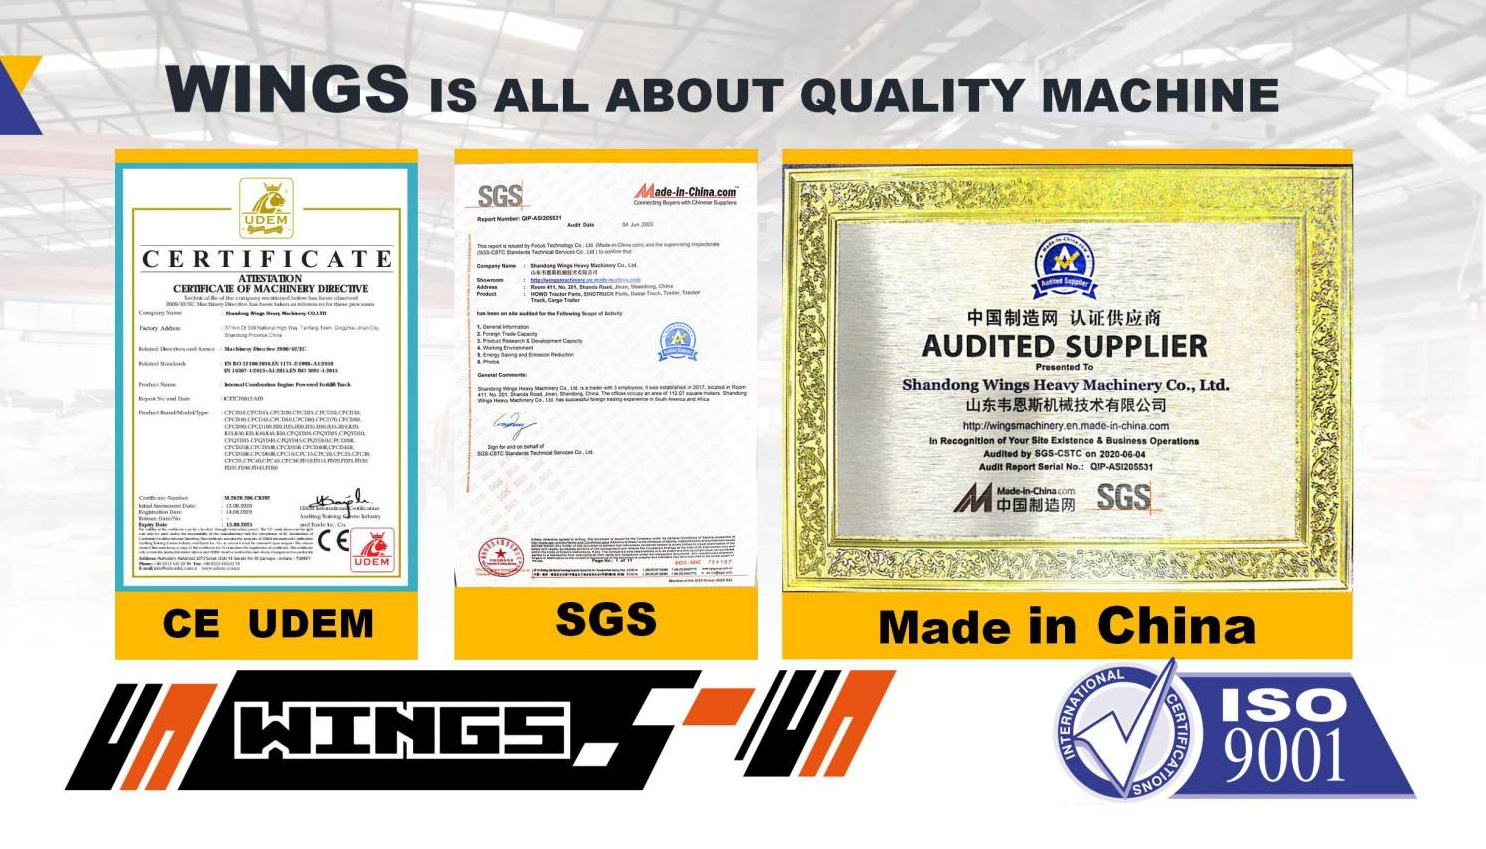 WINGS MACHINERY QUALITY